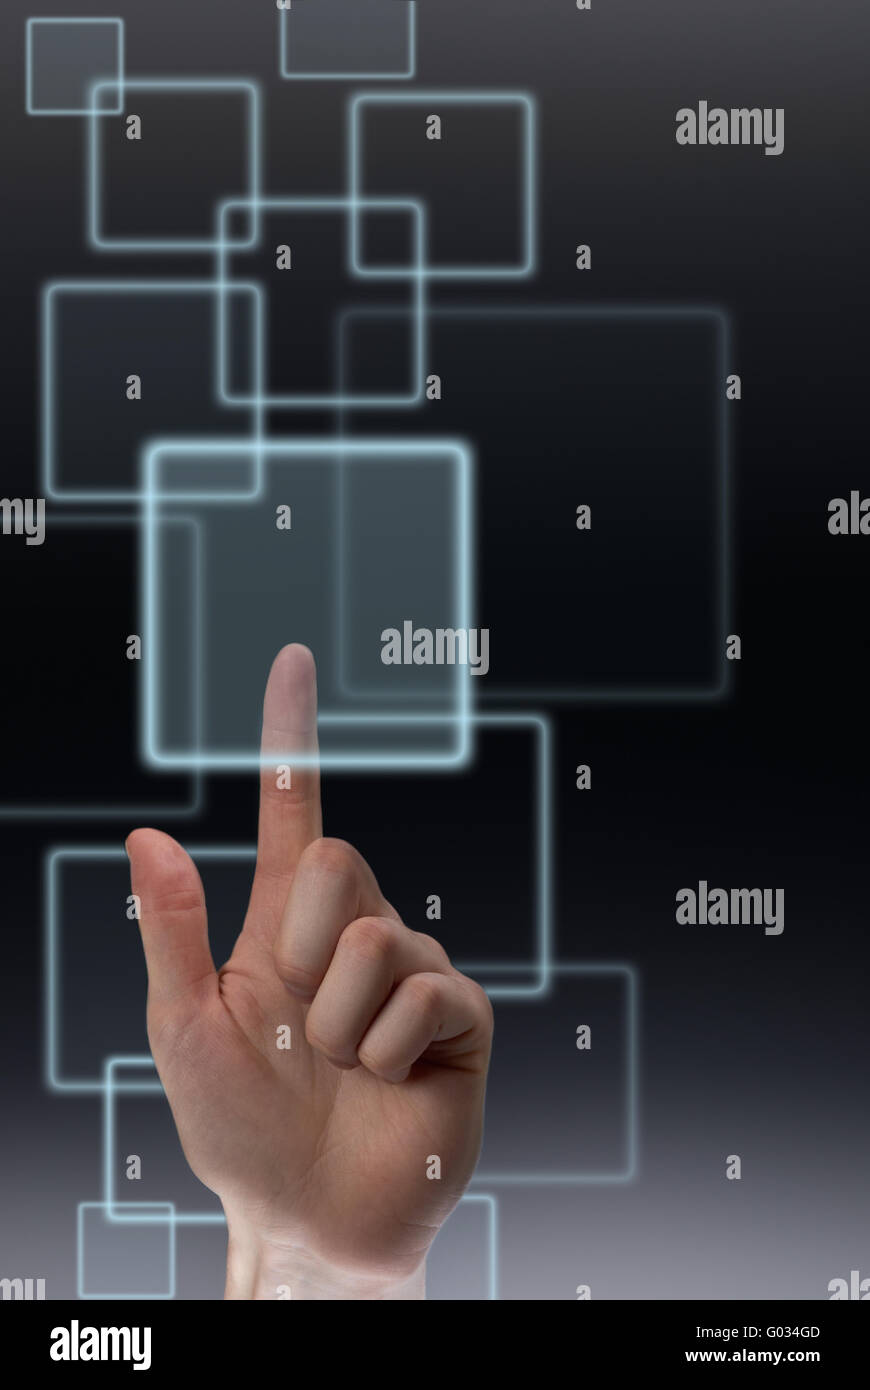 Pushing a button on touch screen - Stock Image